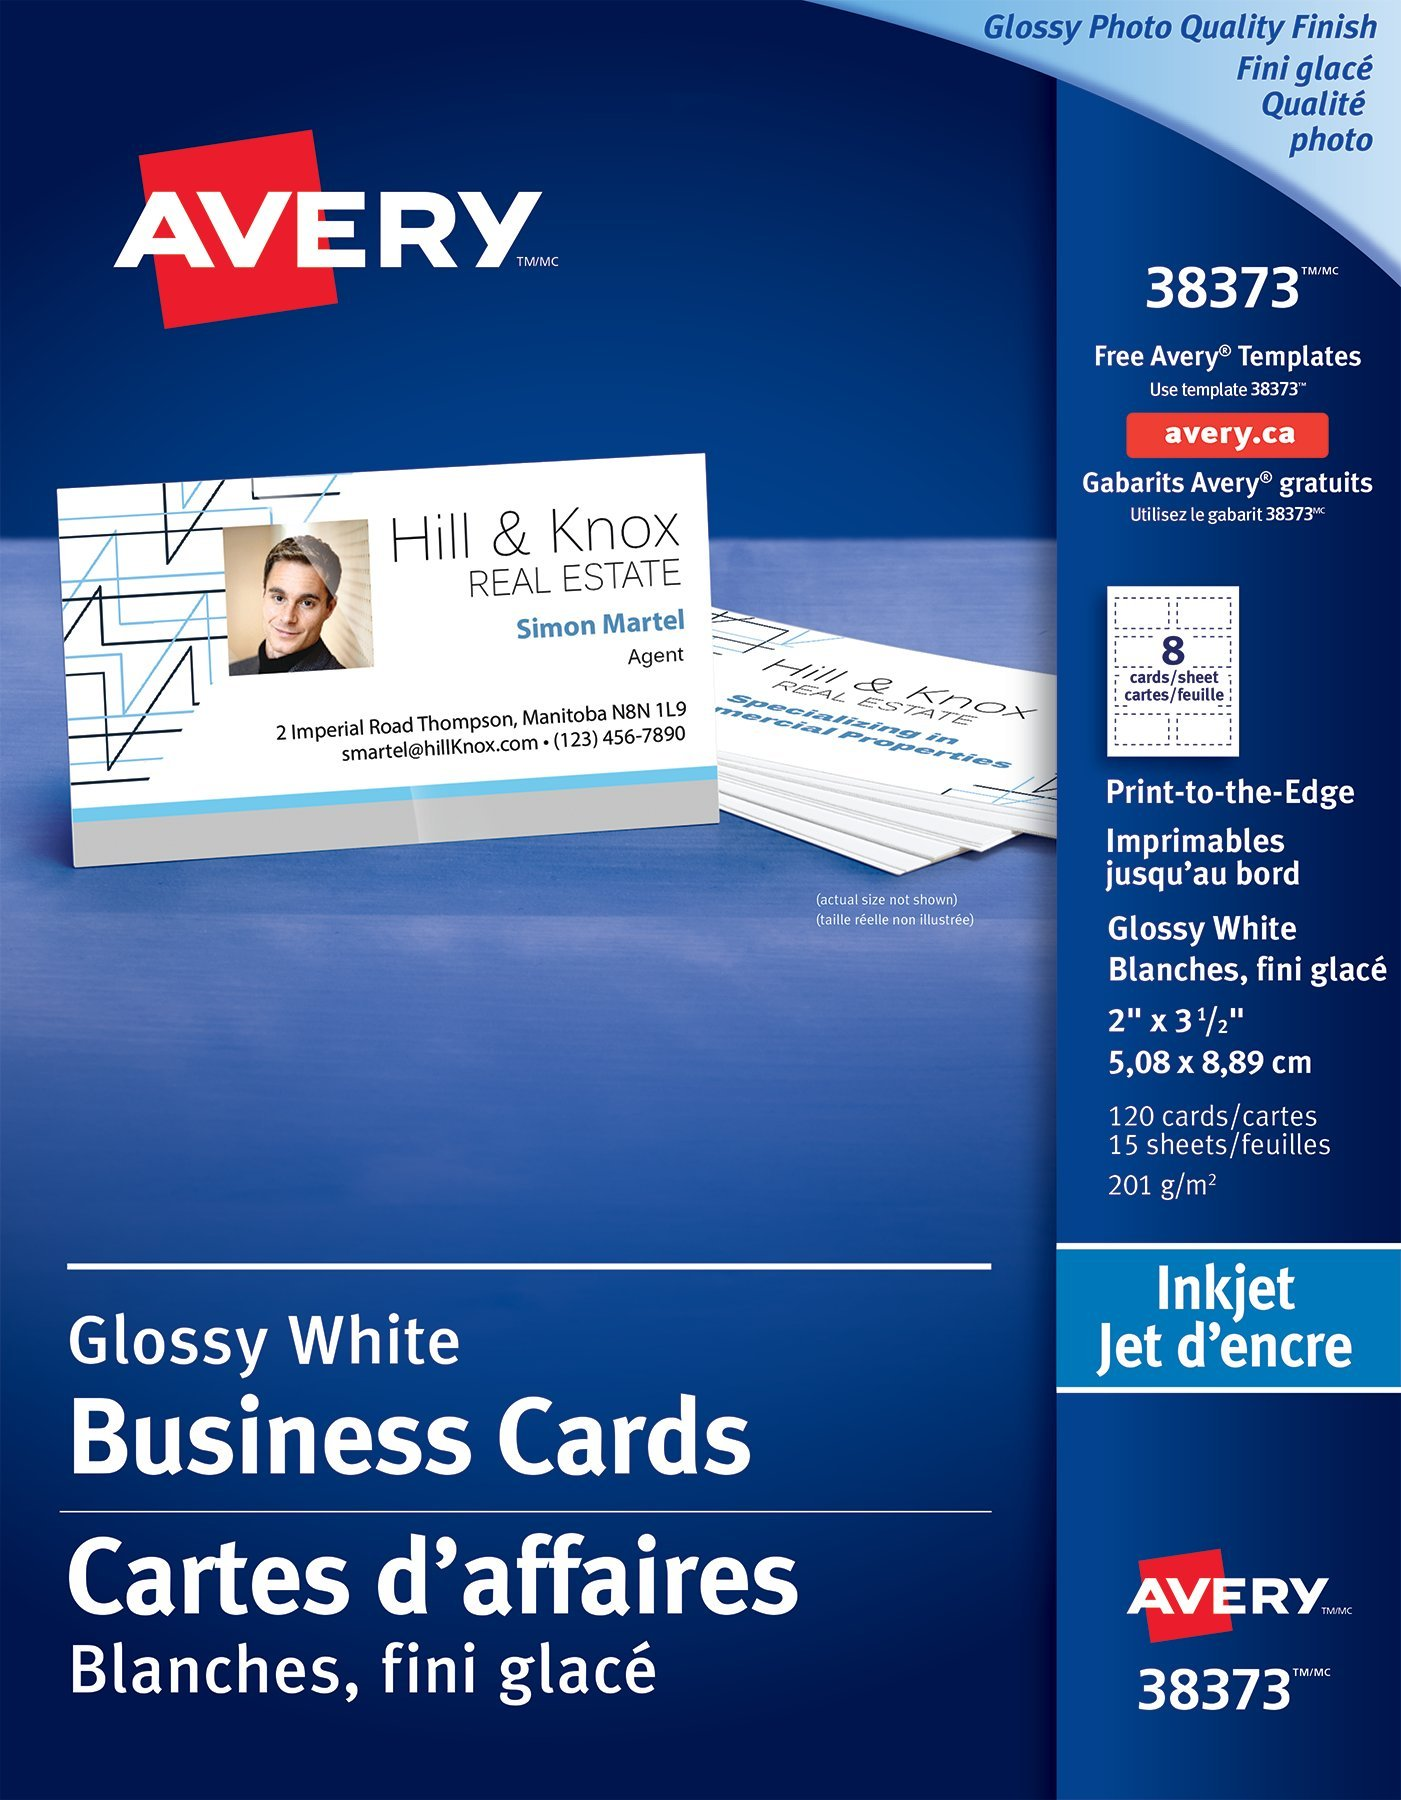 Business cards make your own online custom business card printing avery glossy photo quality business cards 38373 2 x 3 rectangle reheart